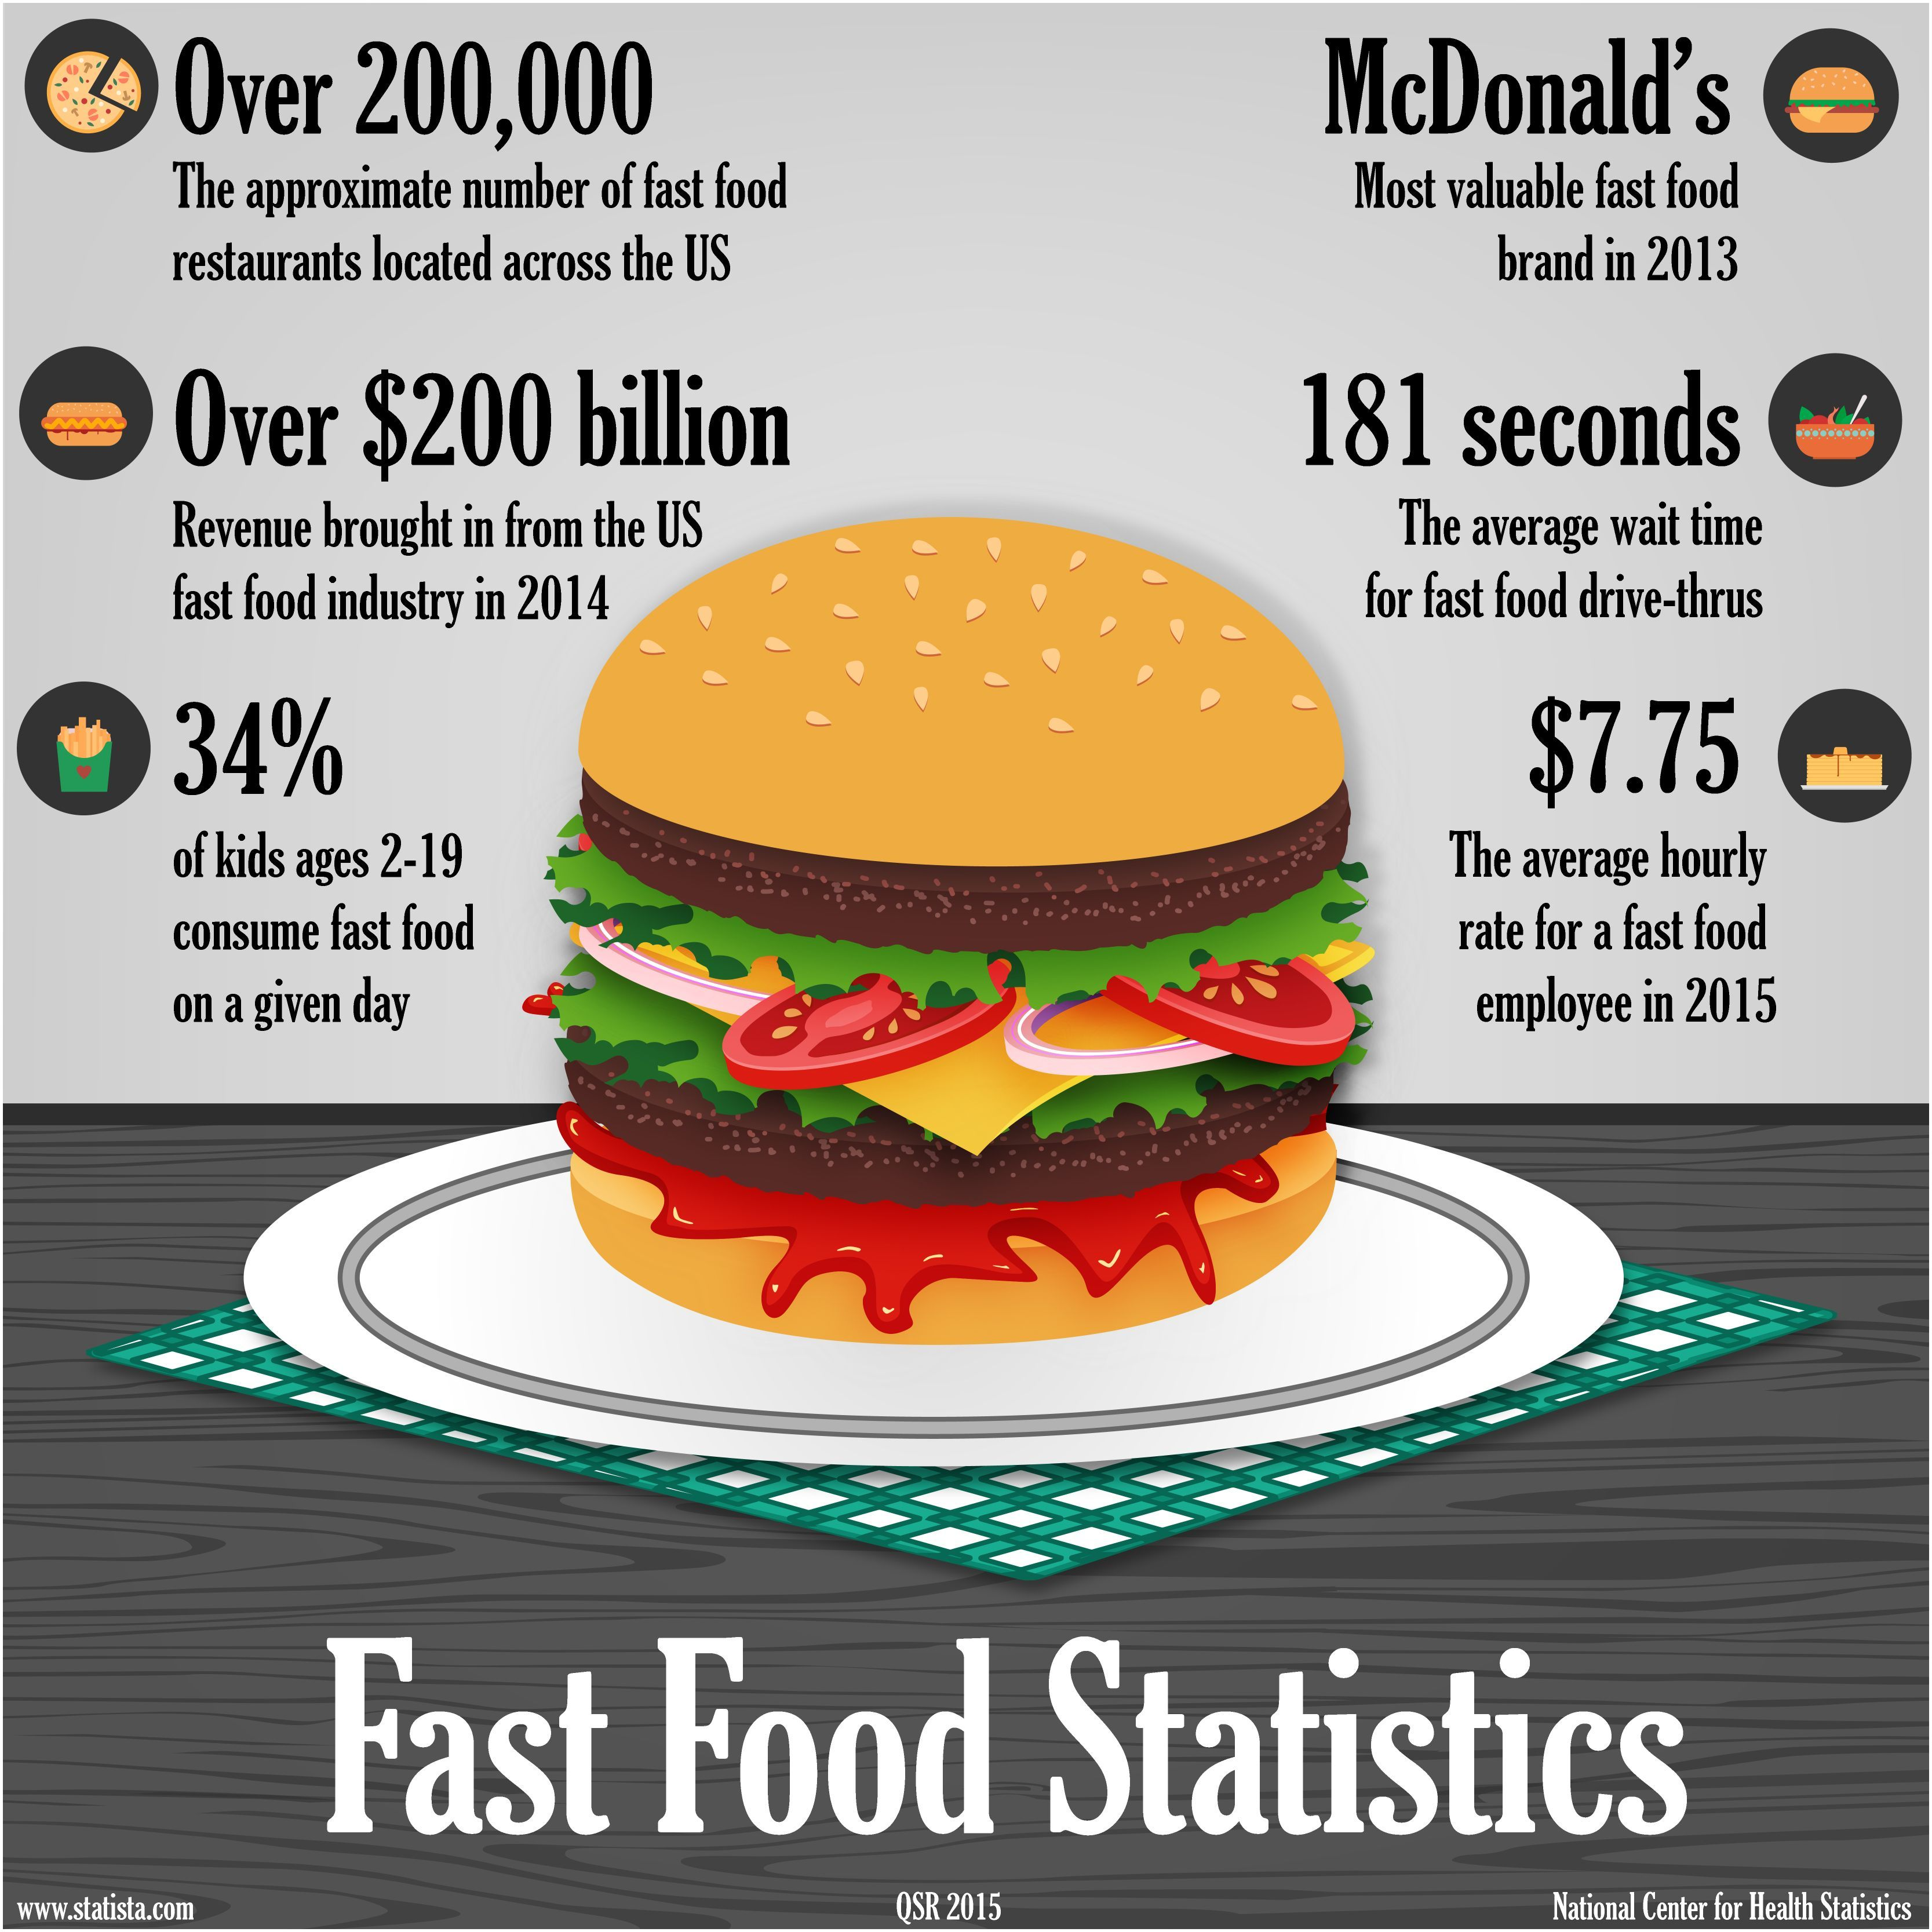 Magazines for Restaurant Owners Fast Food Statistics Rmagazine Business Restaurant Management